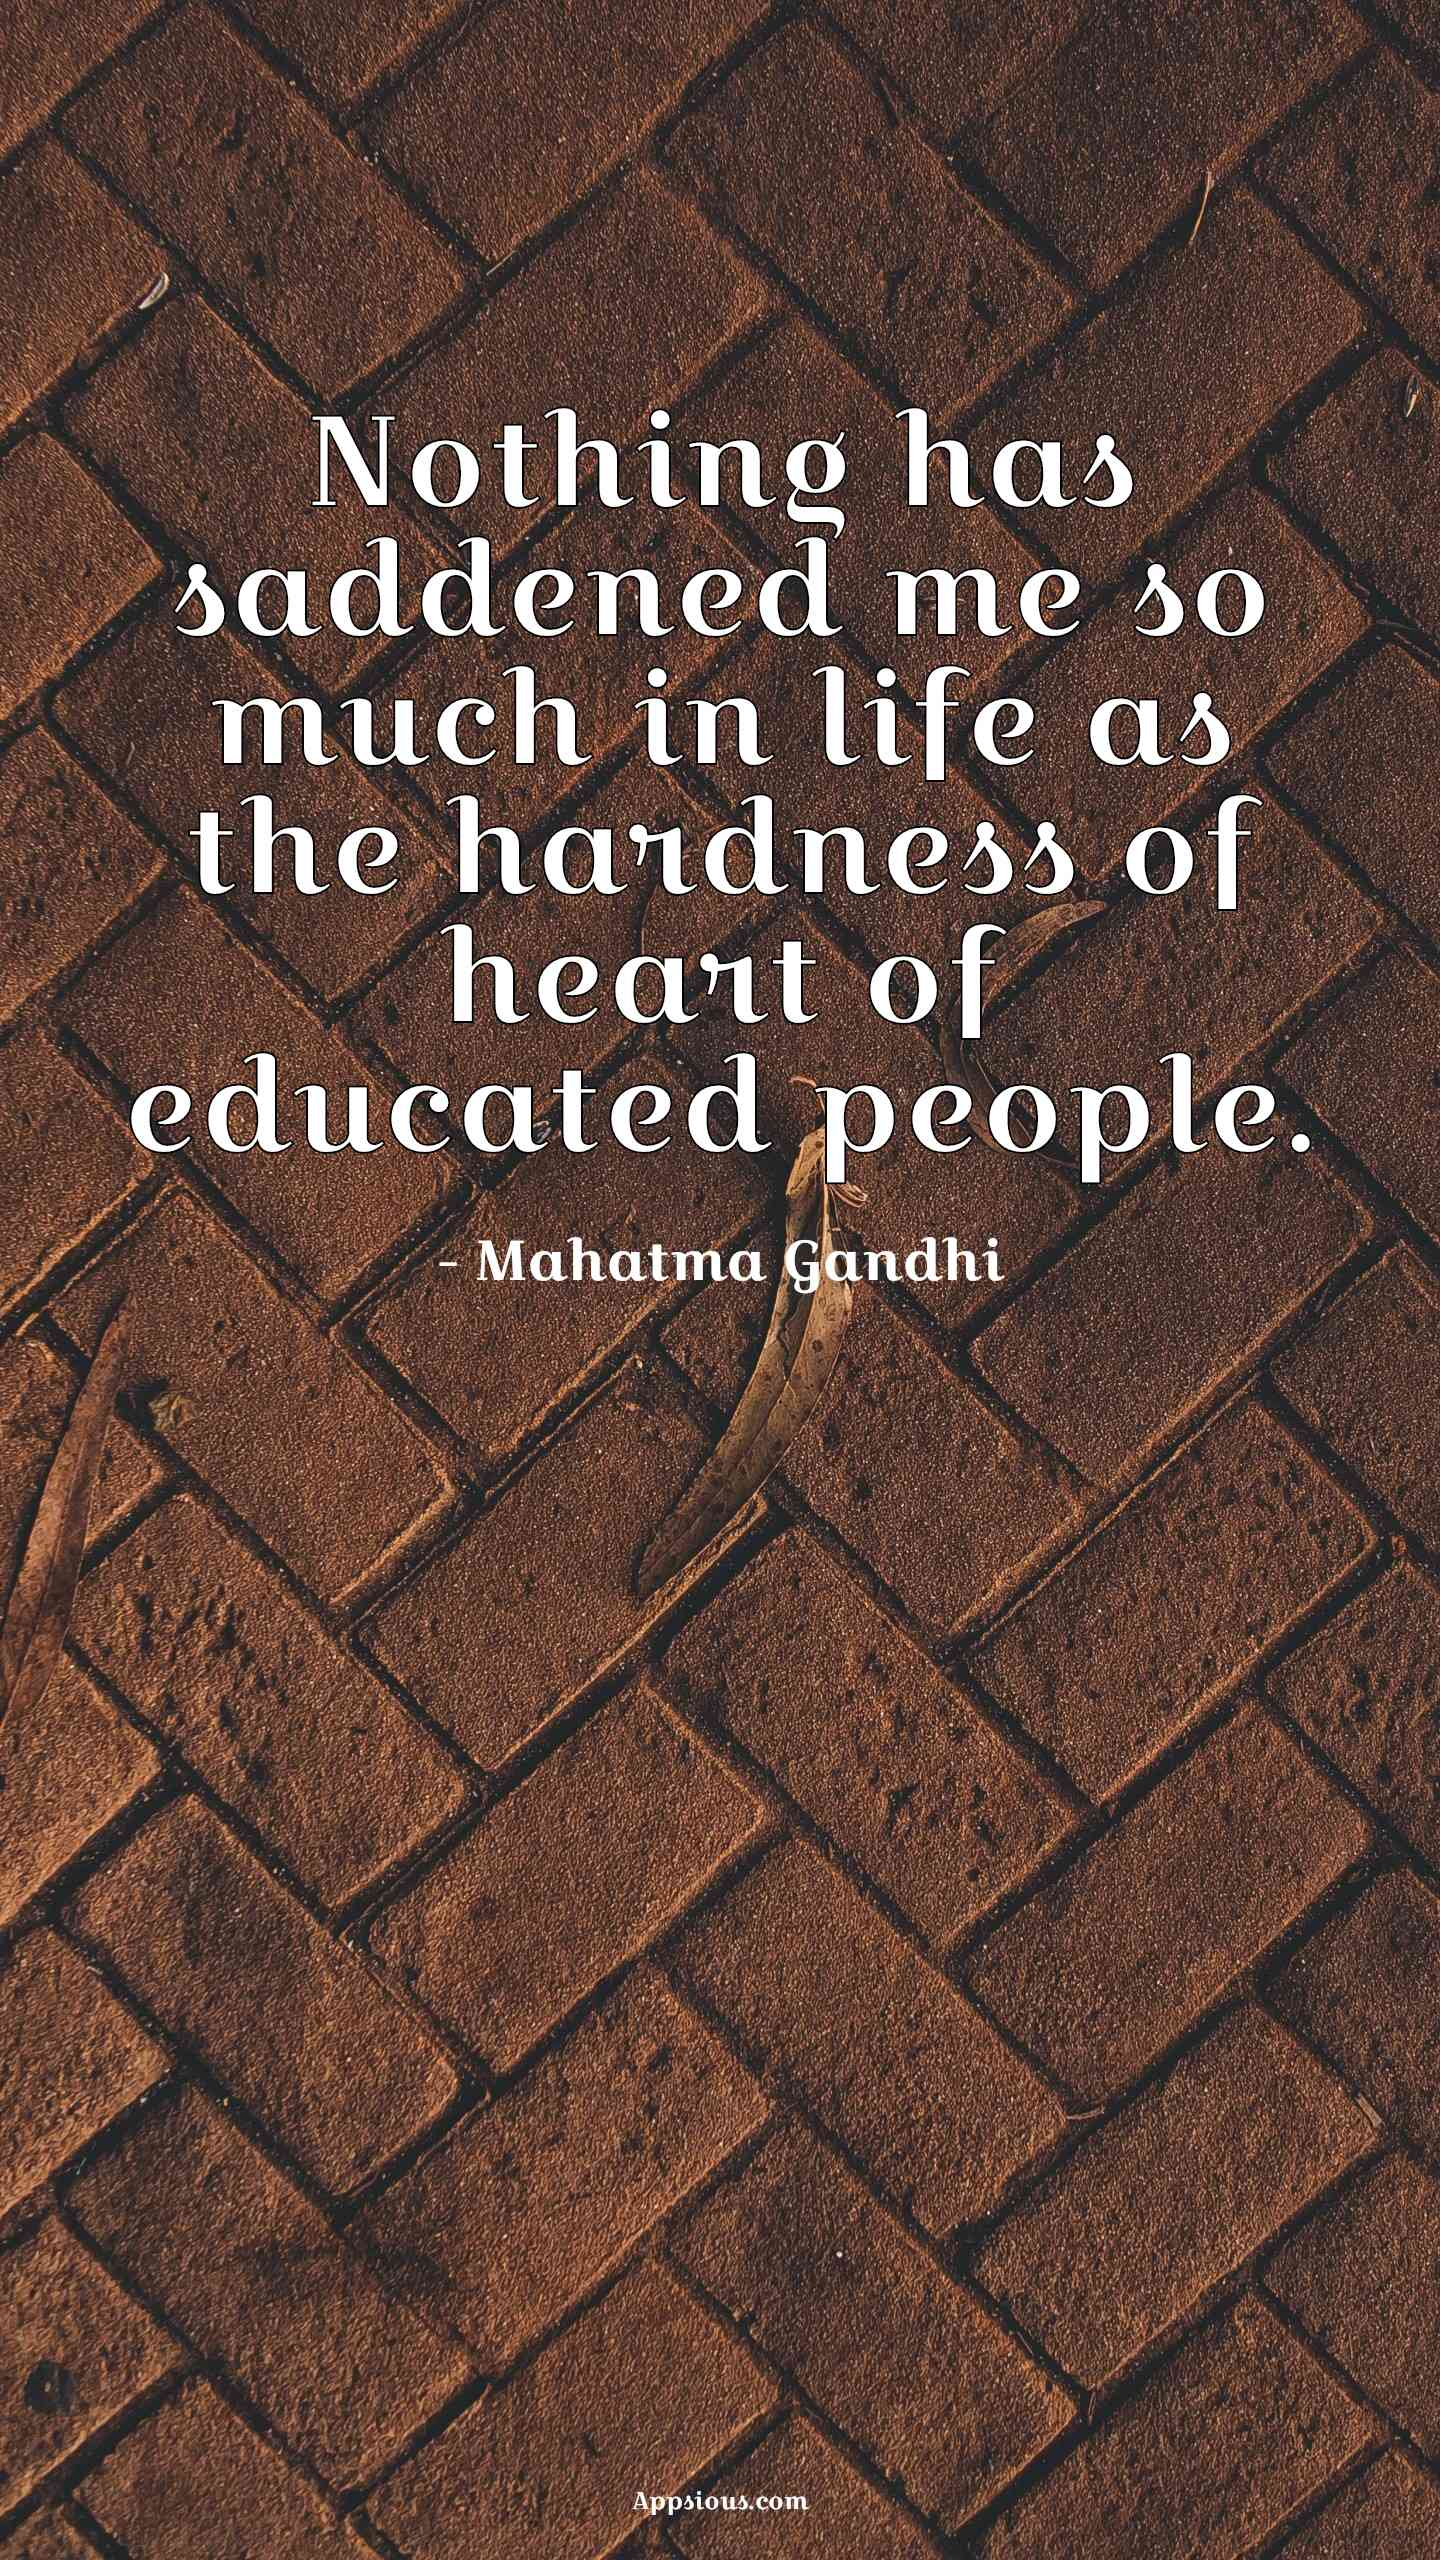 Nothing has saddened me so much in life as the hardness of heart of educated people.